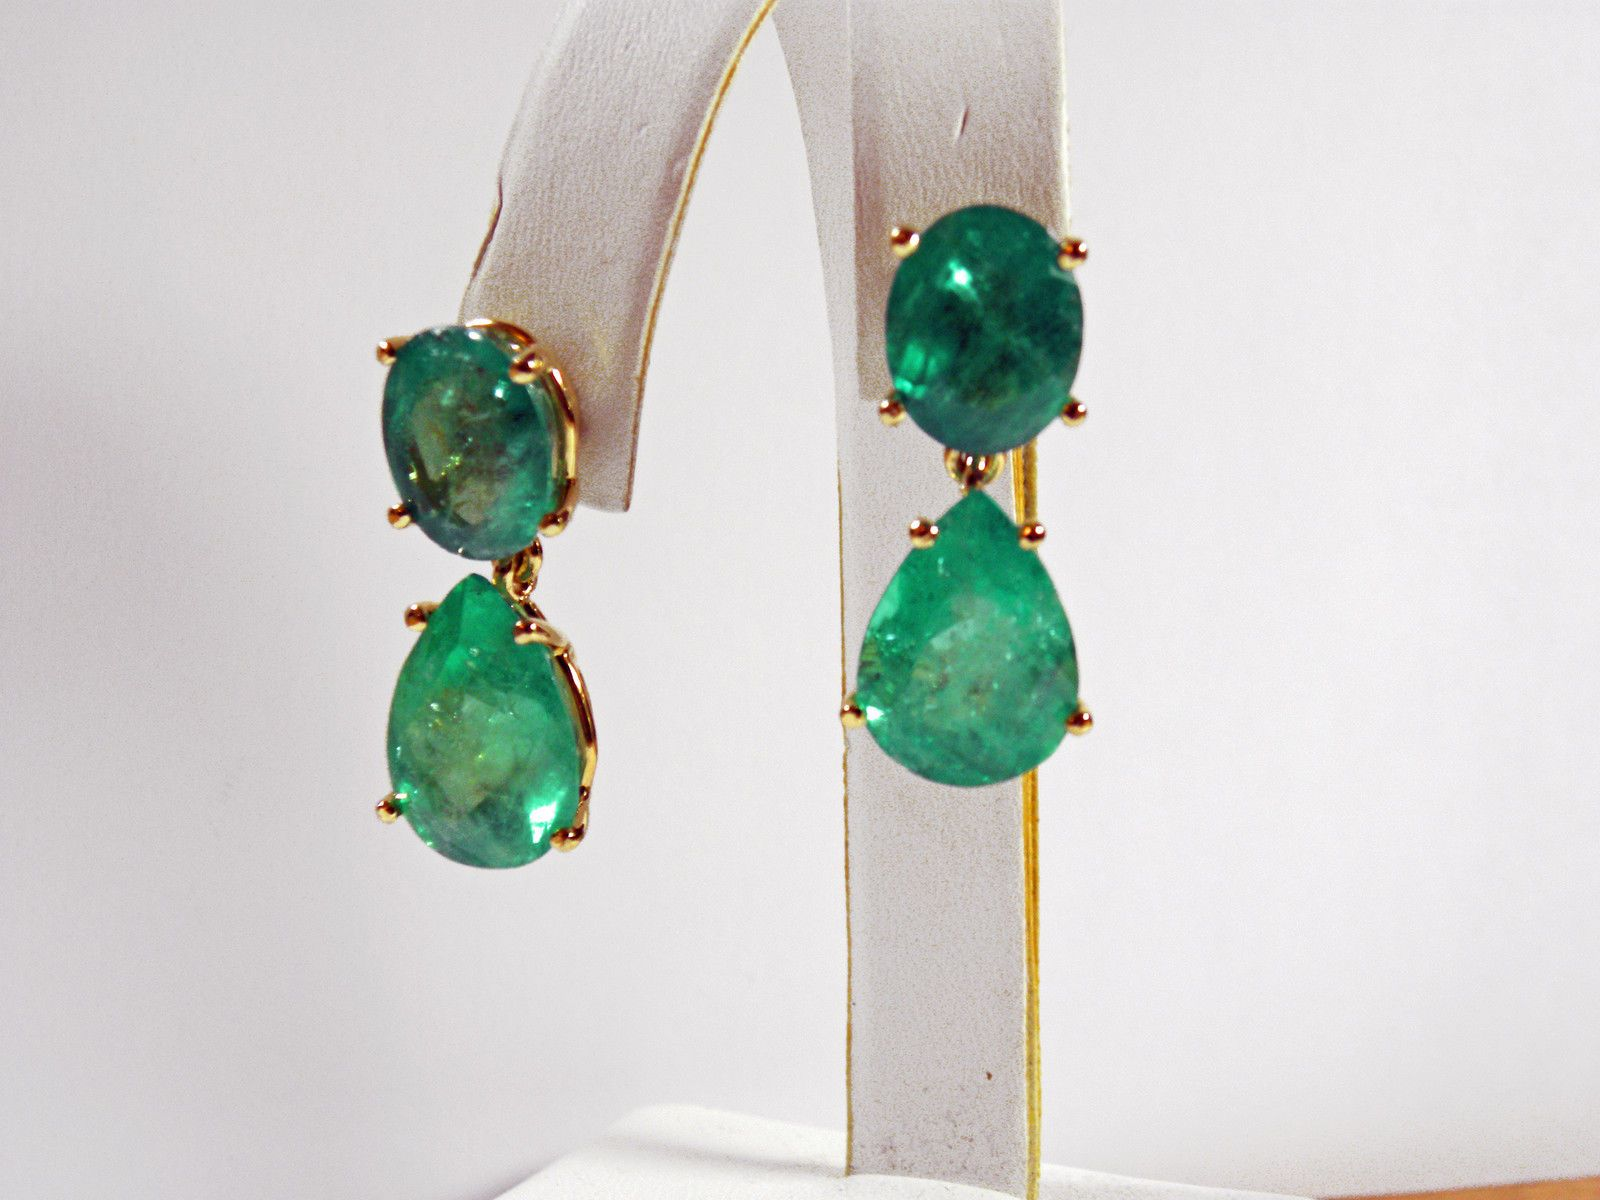 mcteigue earrings sapphires the cabochon shape emerald karat by yellow are pear sapphire item natural accompanied cut emeralds drop mcclelland smooth